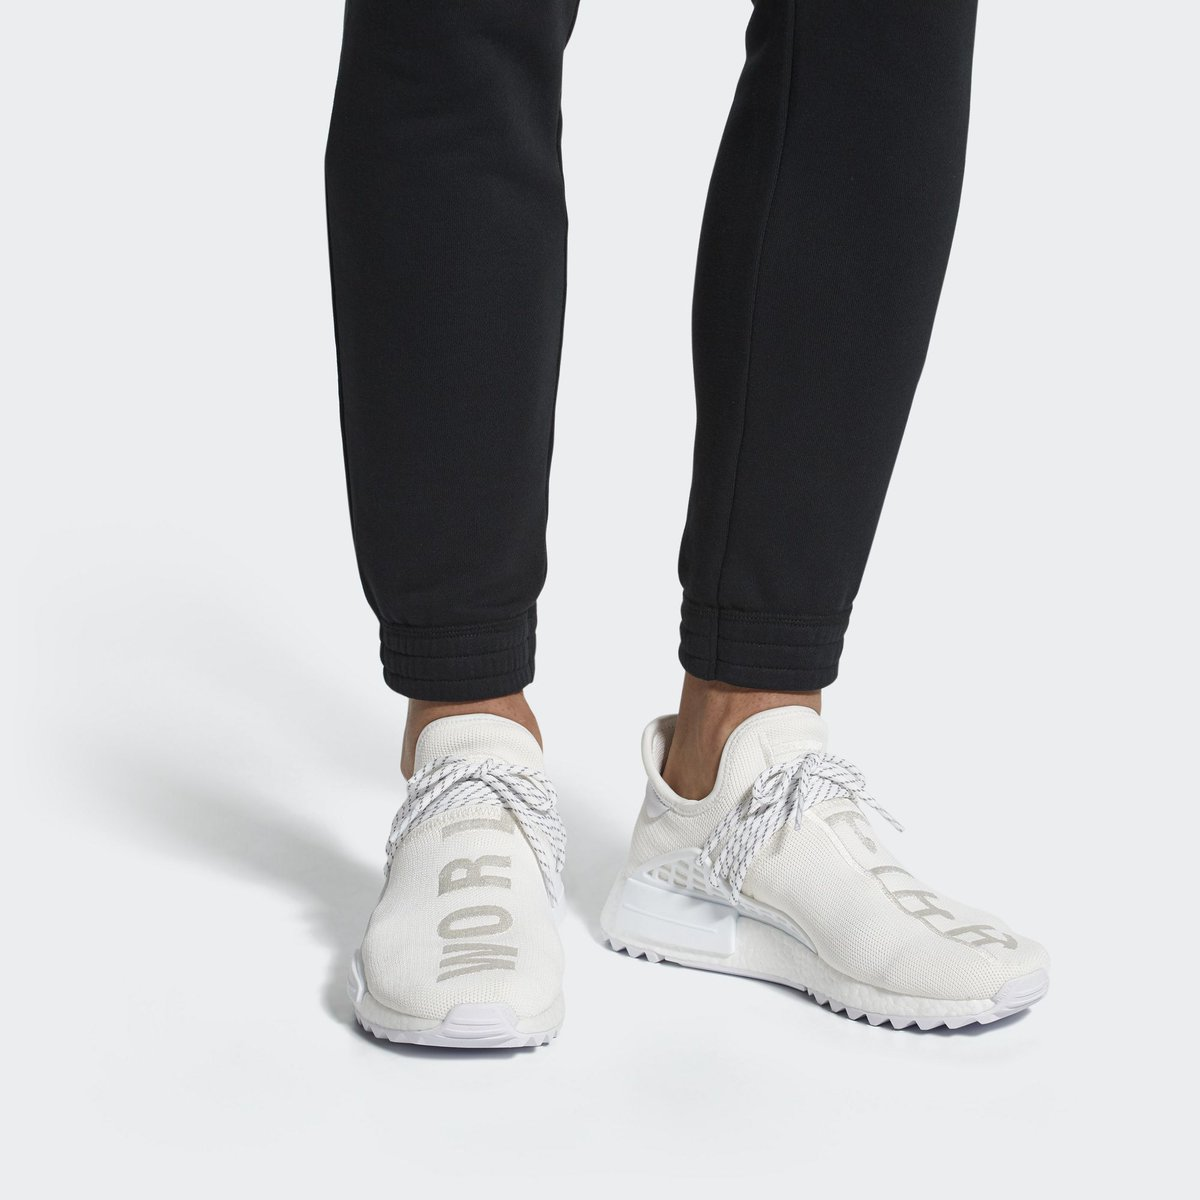 adidas nmd xr1 white womens adidas yeezy 750 boost release date